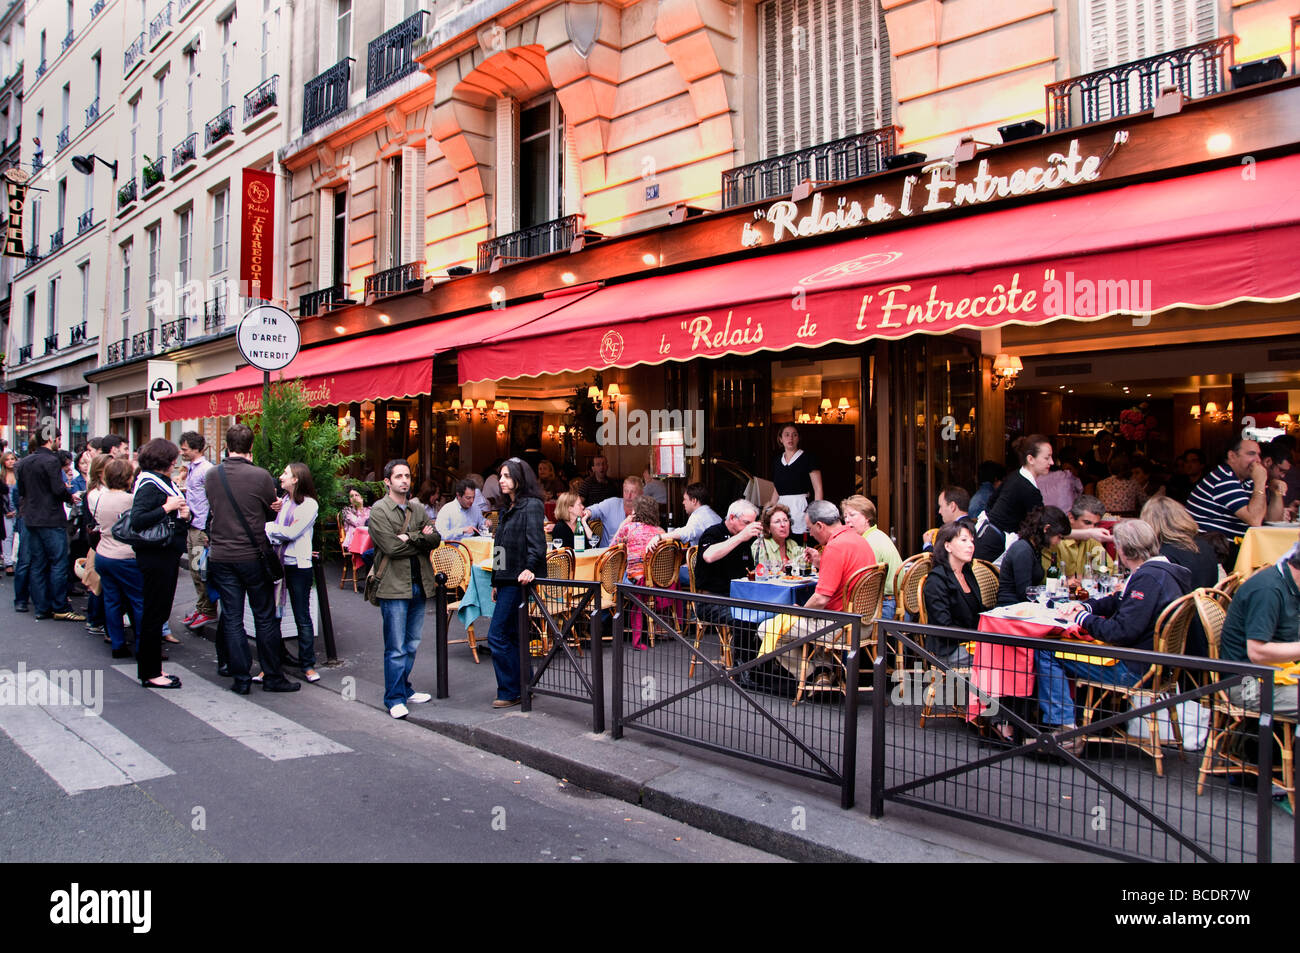 Paris France French Restaurant Cafe Bar Pub Food - Stock Image